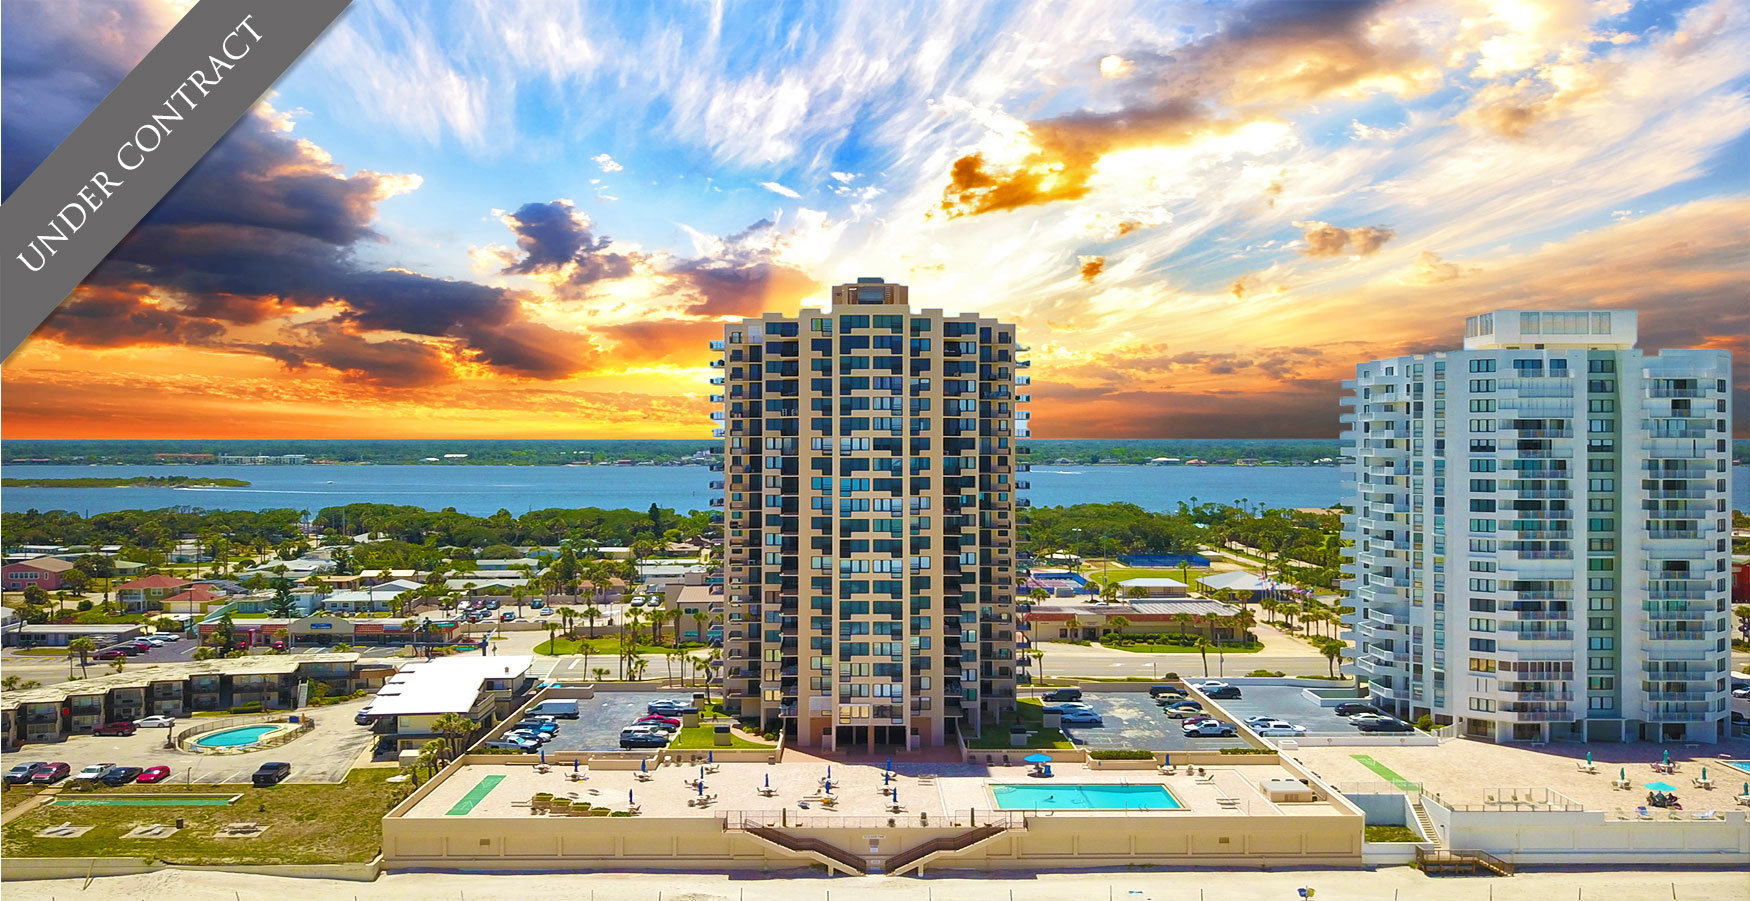 Oceans One Condos For Sale Oceanfront Real Estate at 3051 S Atlantic Ave Daytona Beach Shores, FL  Under Contract